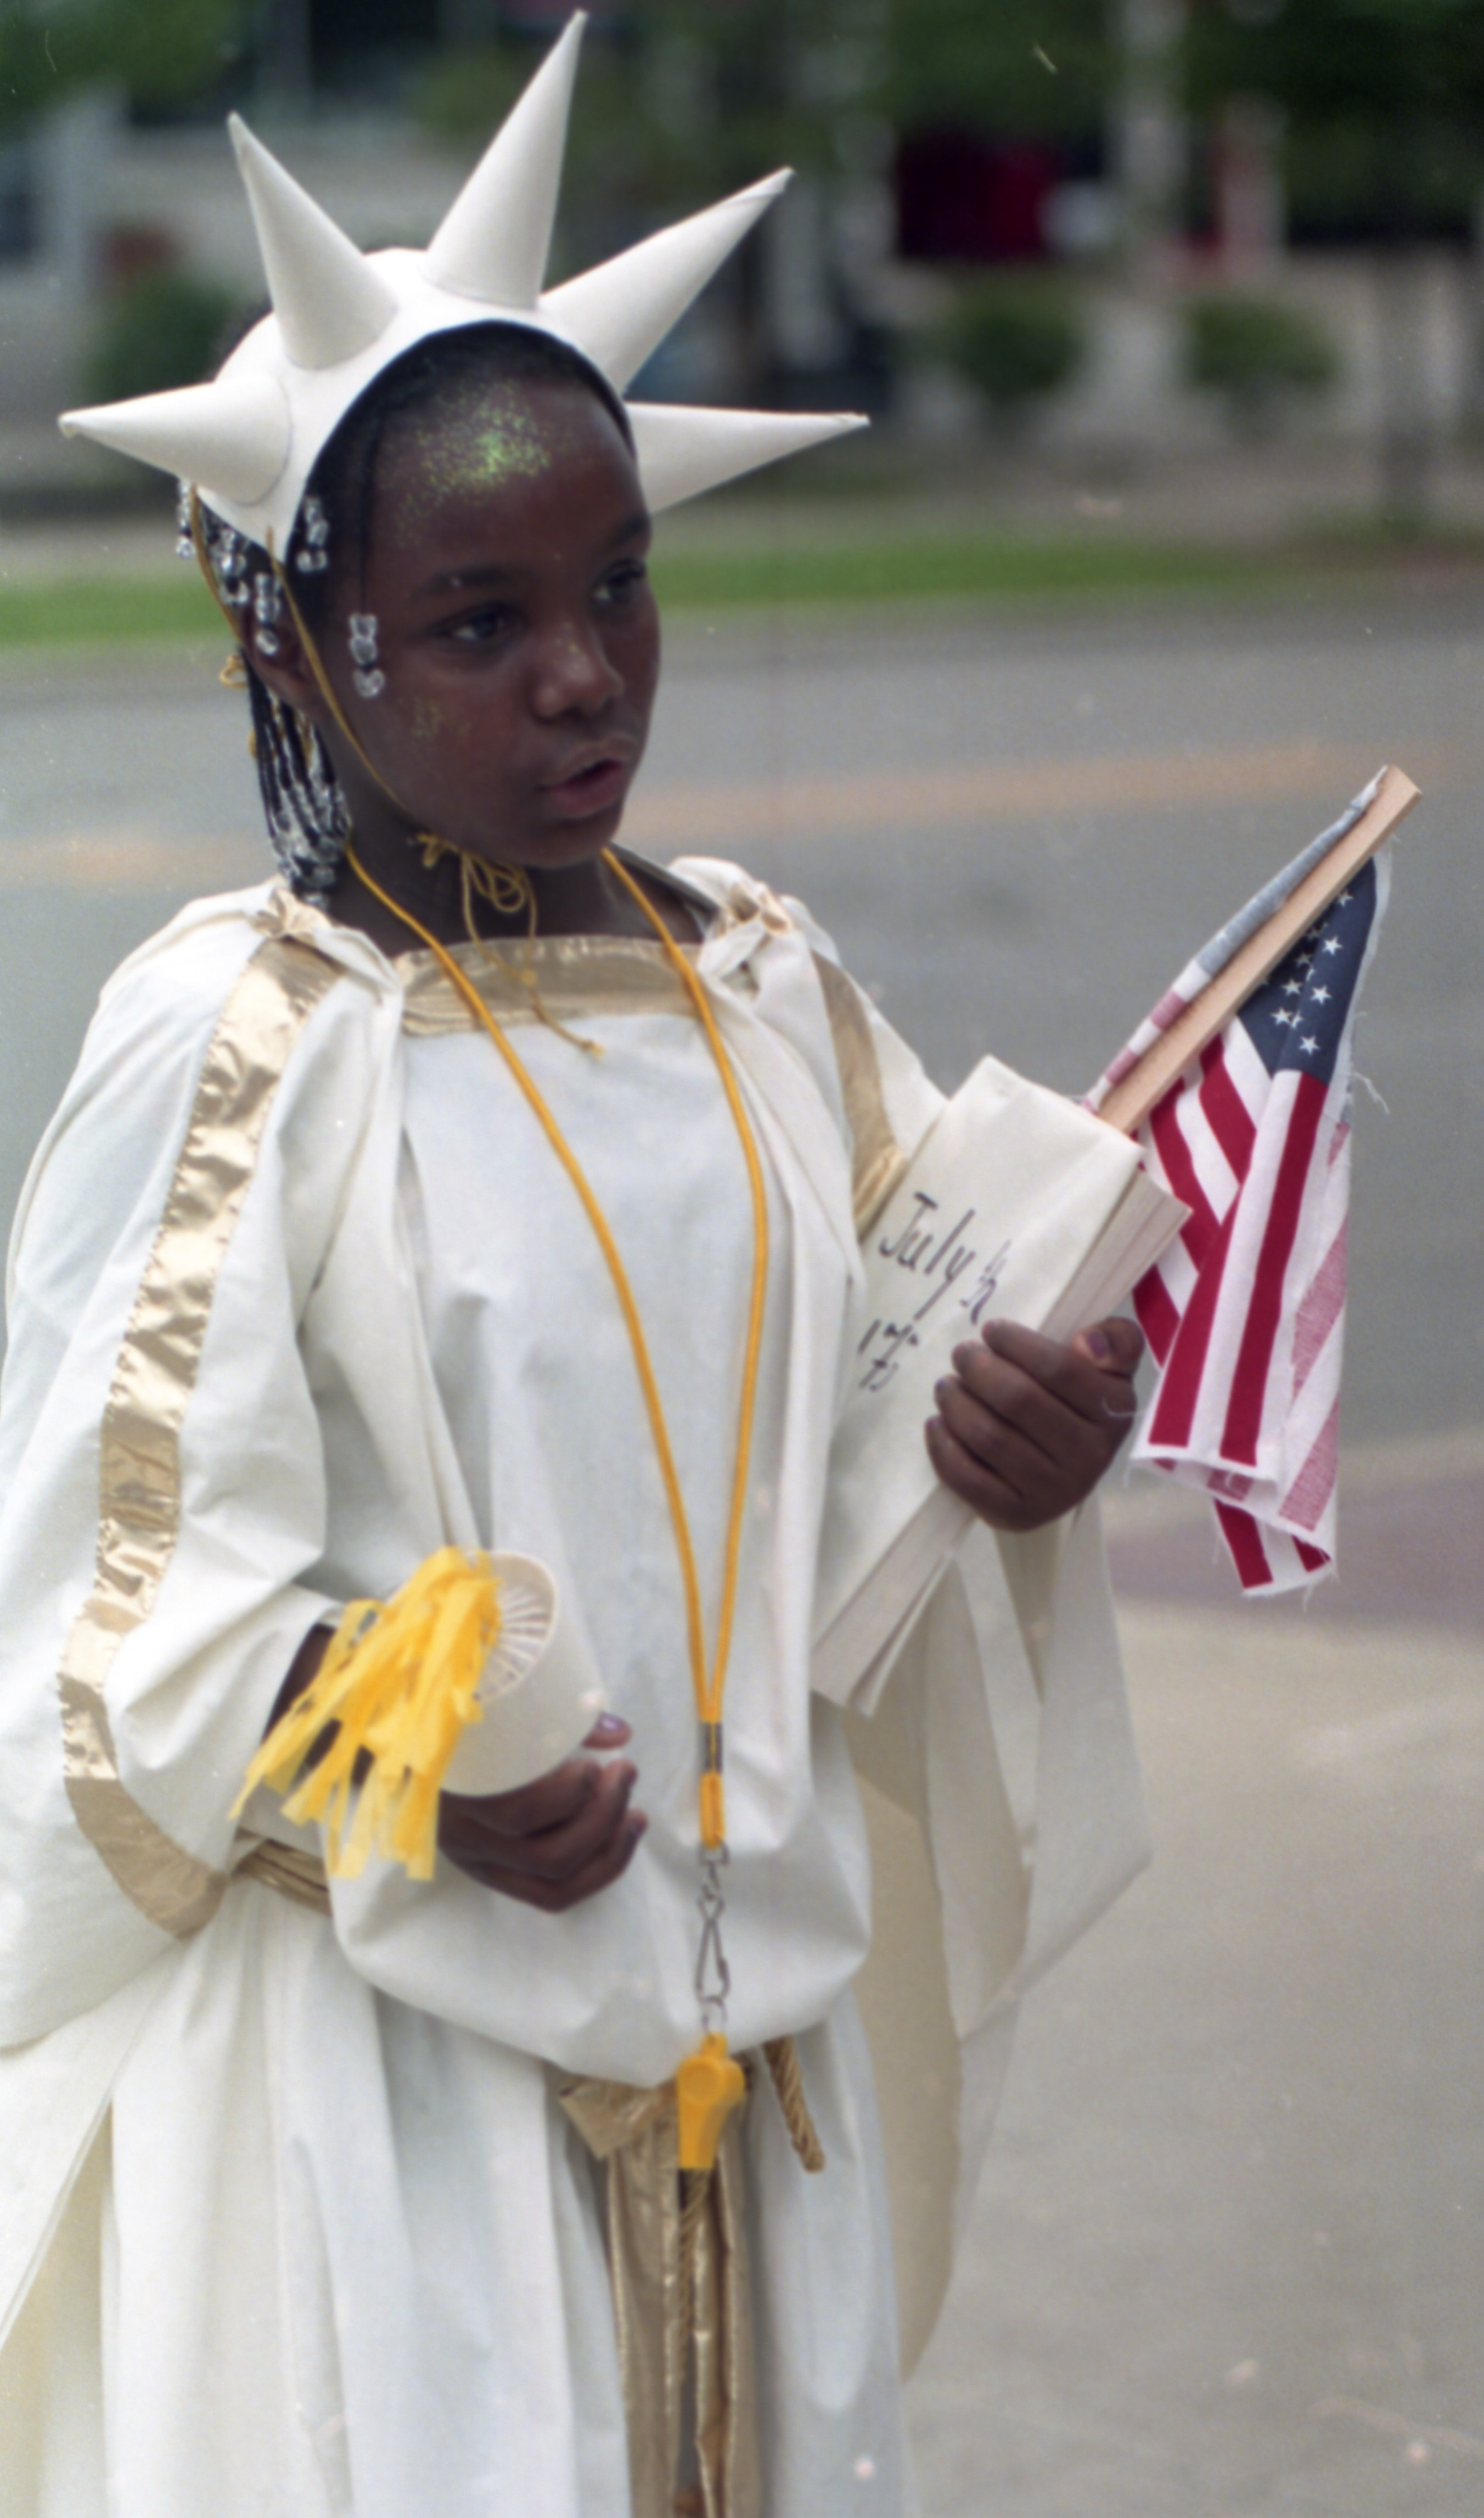 Nakaiya Harrison Marches As The Statue Of Liberty In The Camp Peachy Pre-Independence Day Parade, July 2000 image